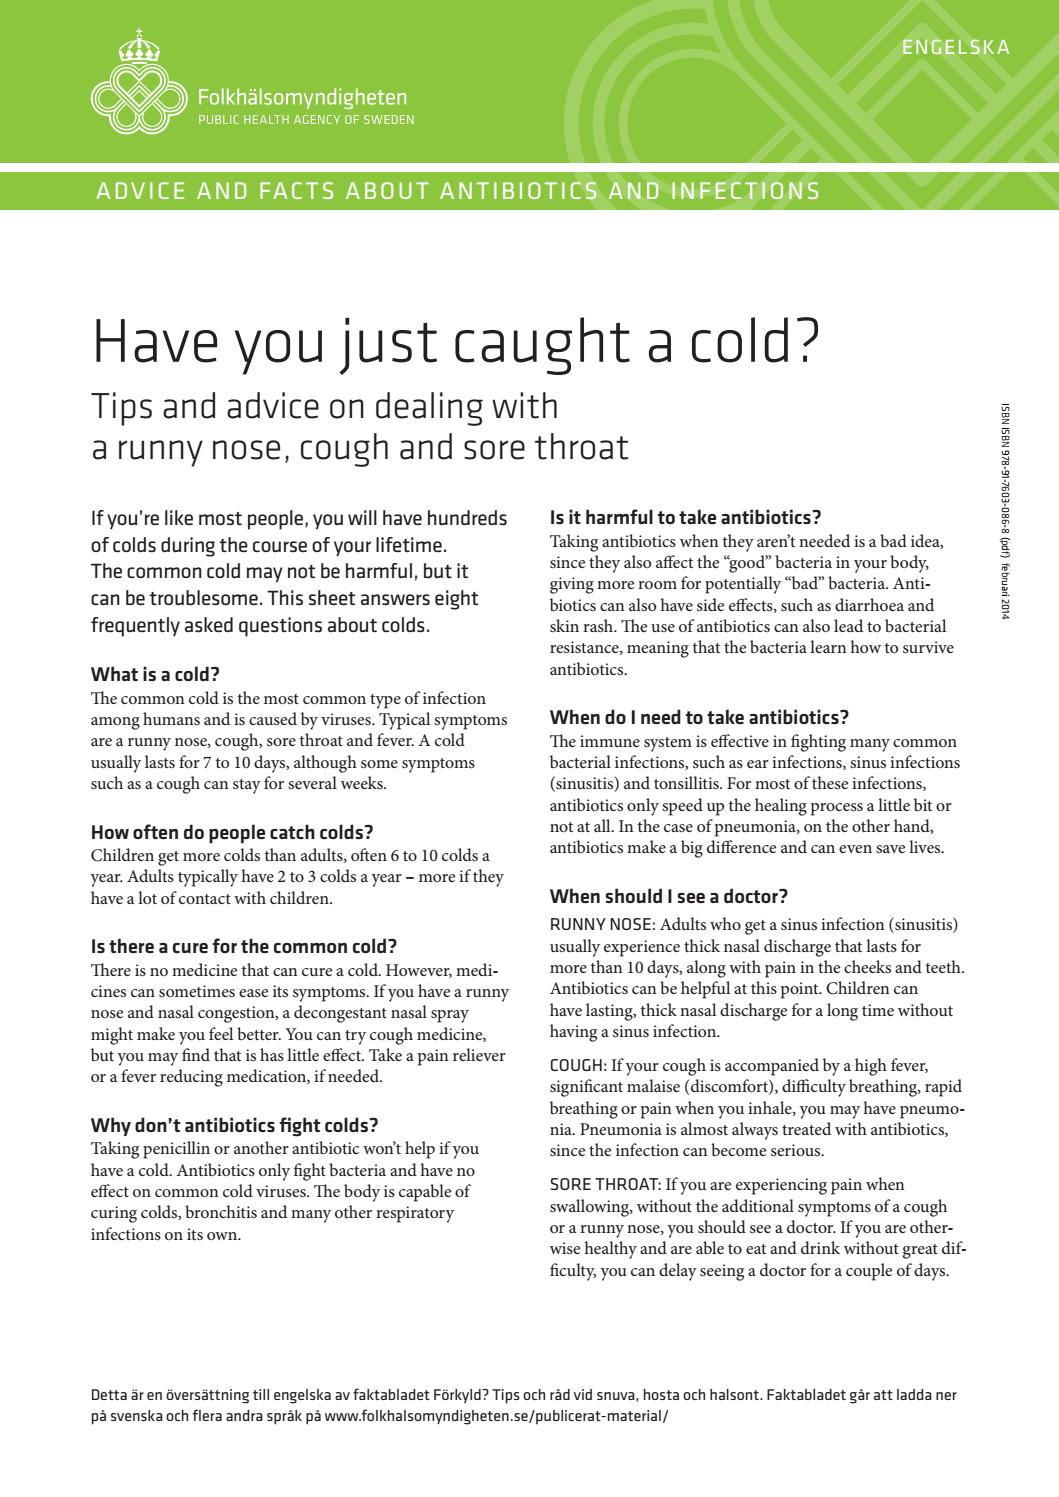 What medicines can make you feel cold